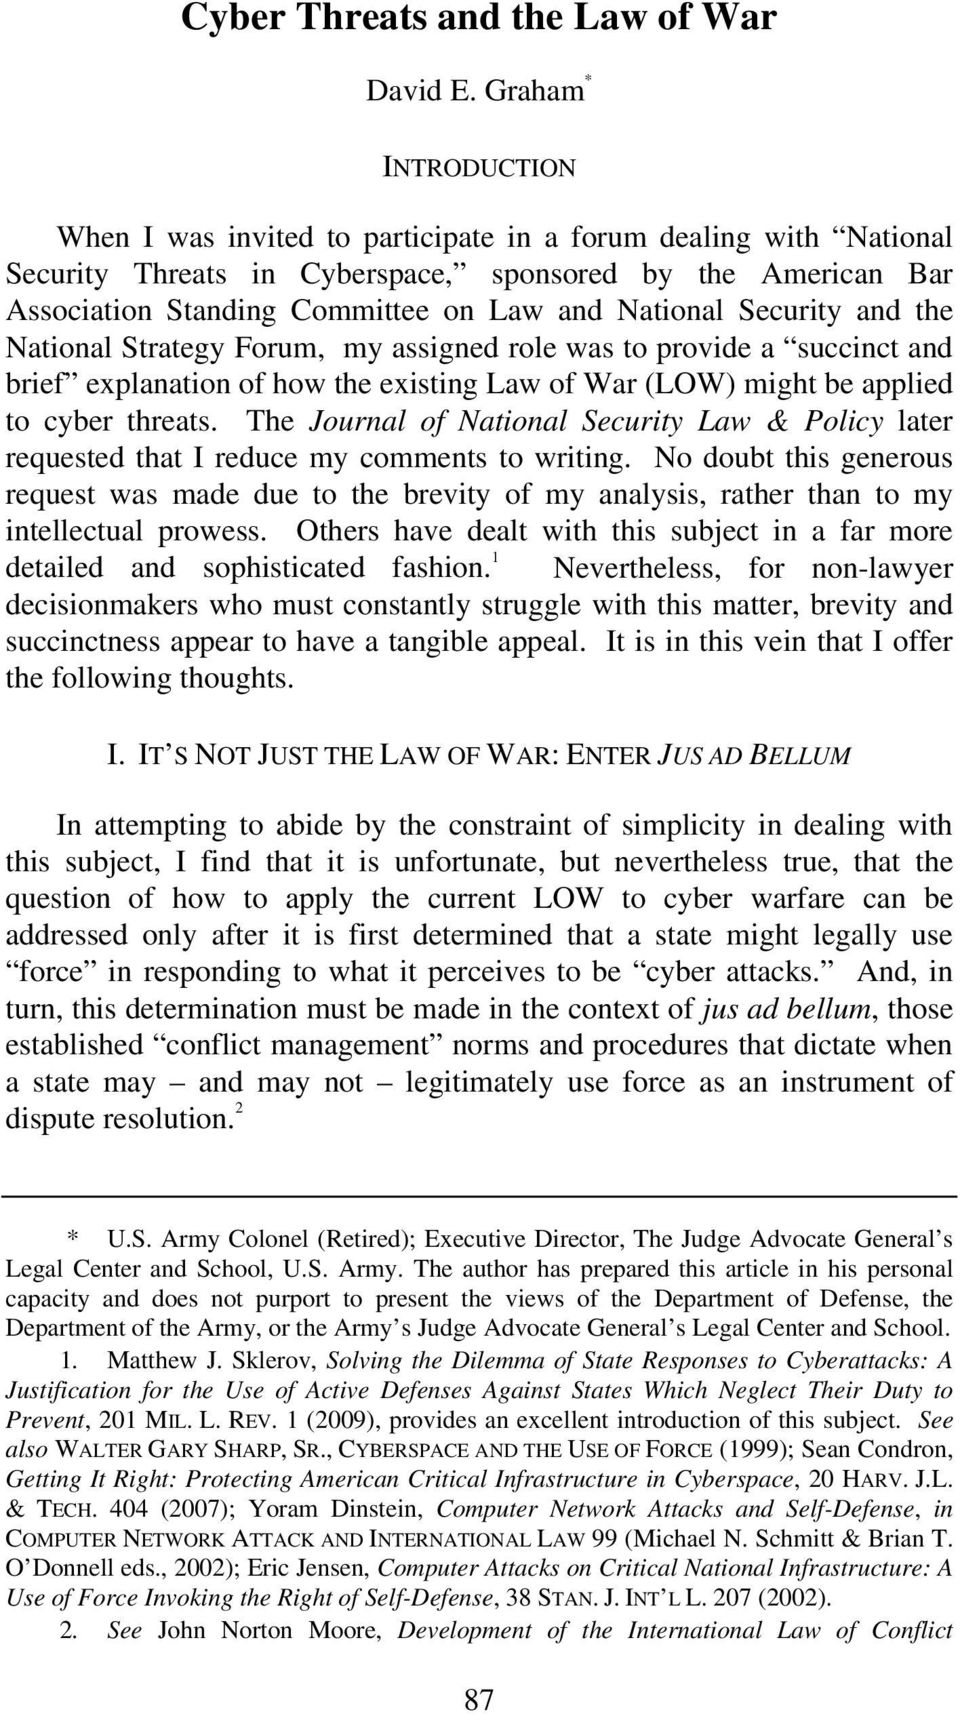 National Security and the National Strategy Forum, my assigned role was to provide a succinct and brief explanation of how the existing Law of War (LOW) might be applied to cyber threats.